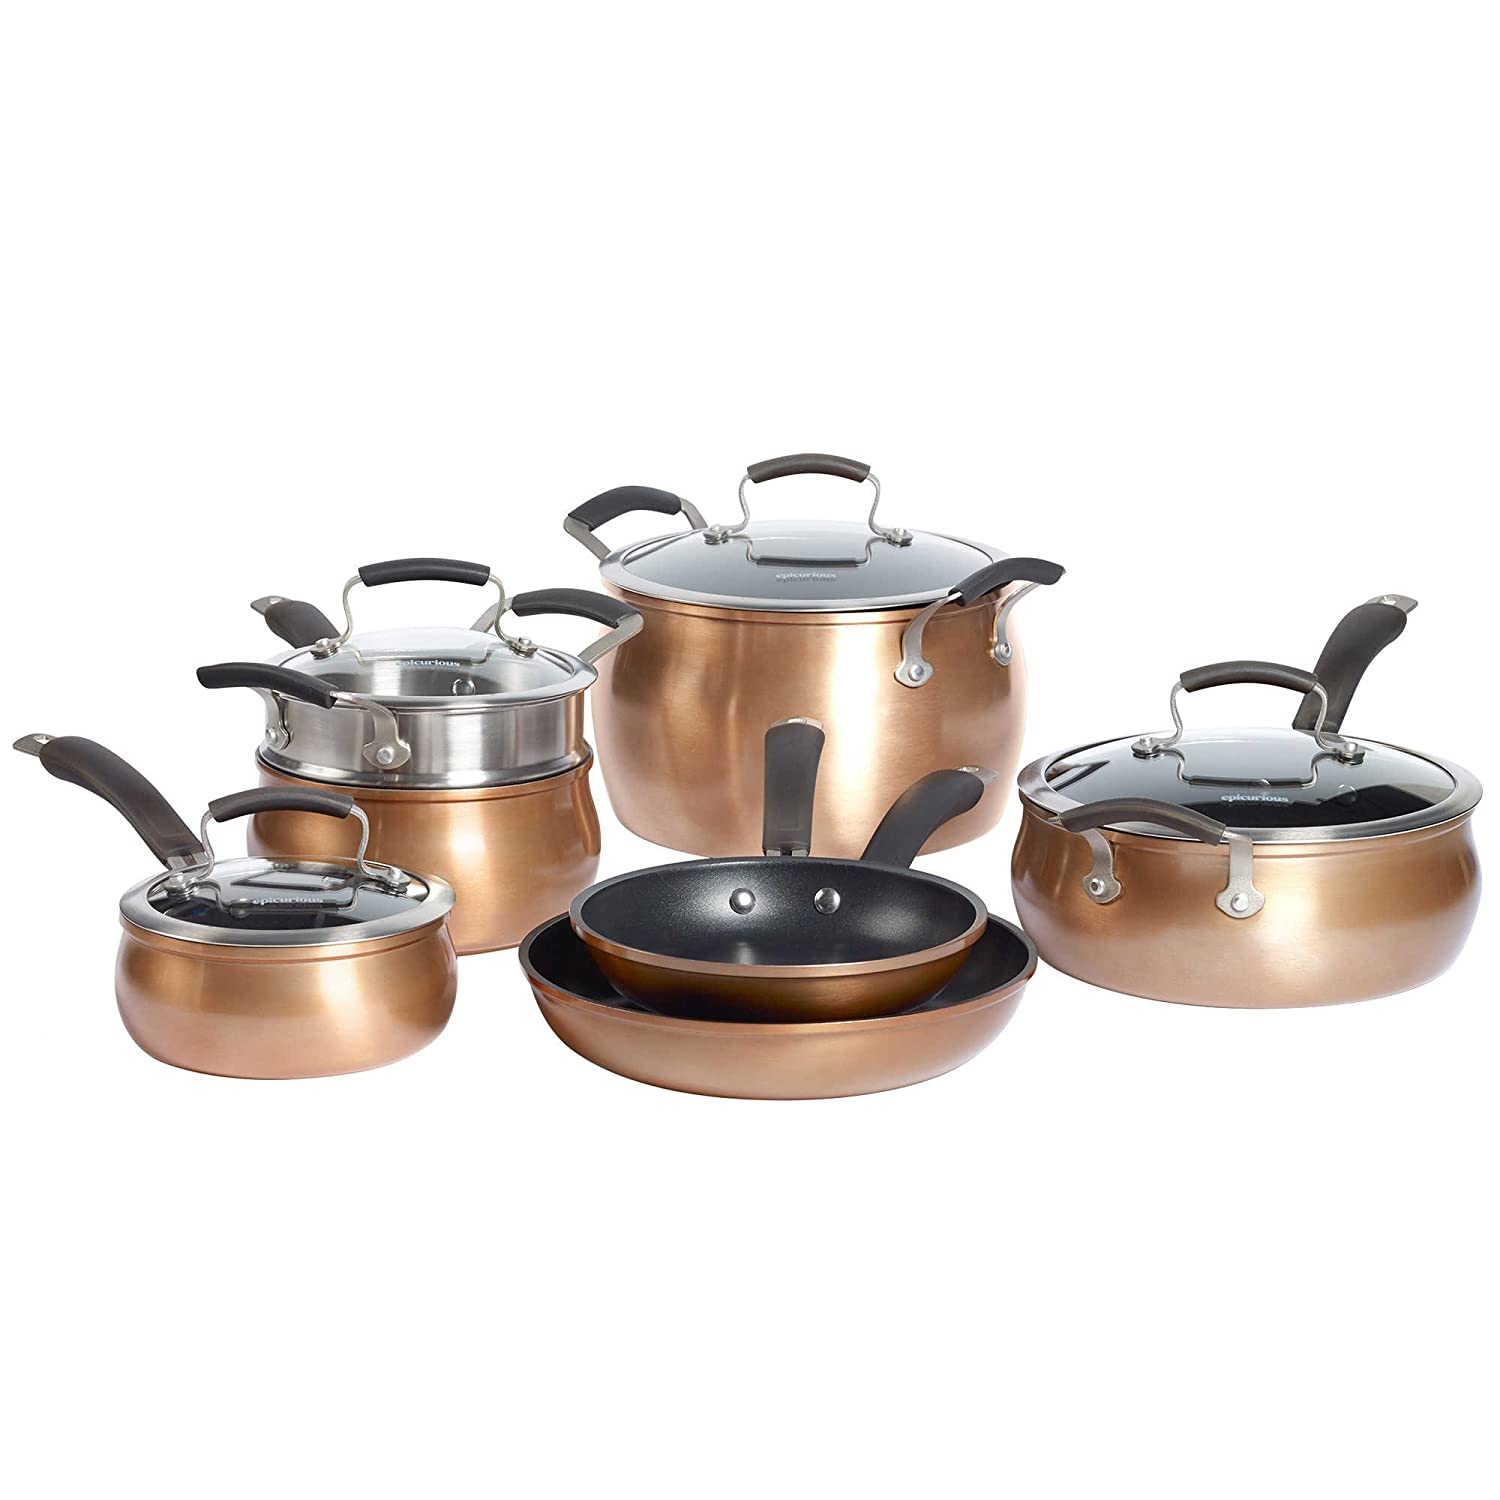 Amazon.com: Epicurious Aluminum Nonstick 11-Piece Cookware Set in ...